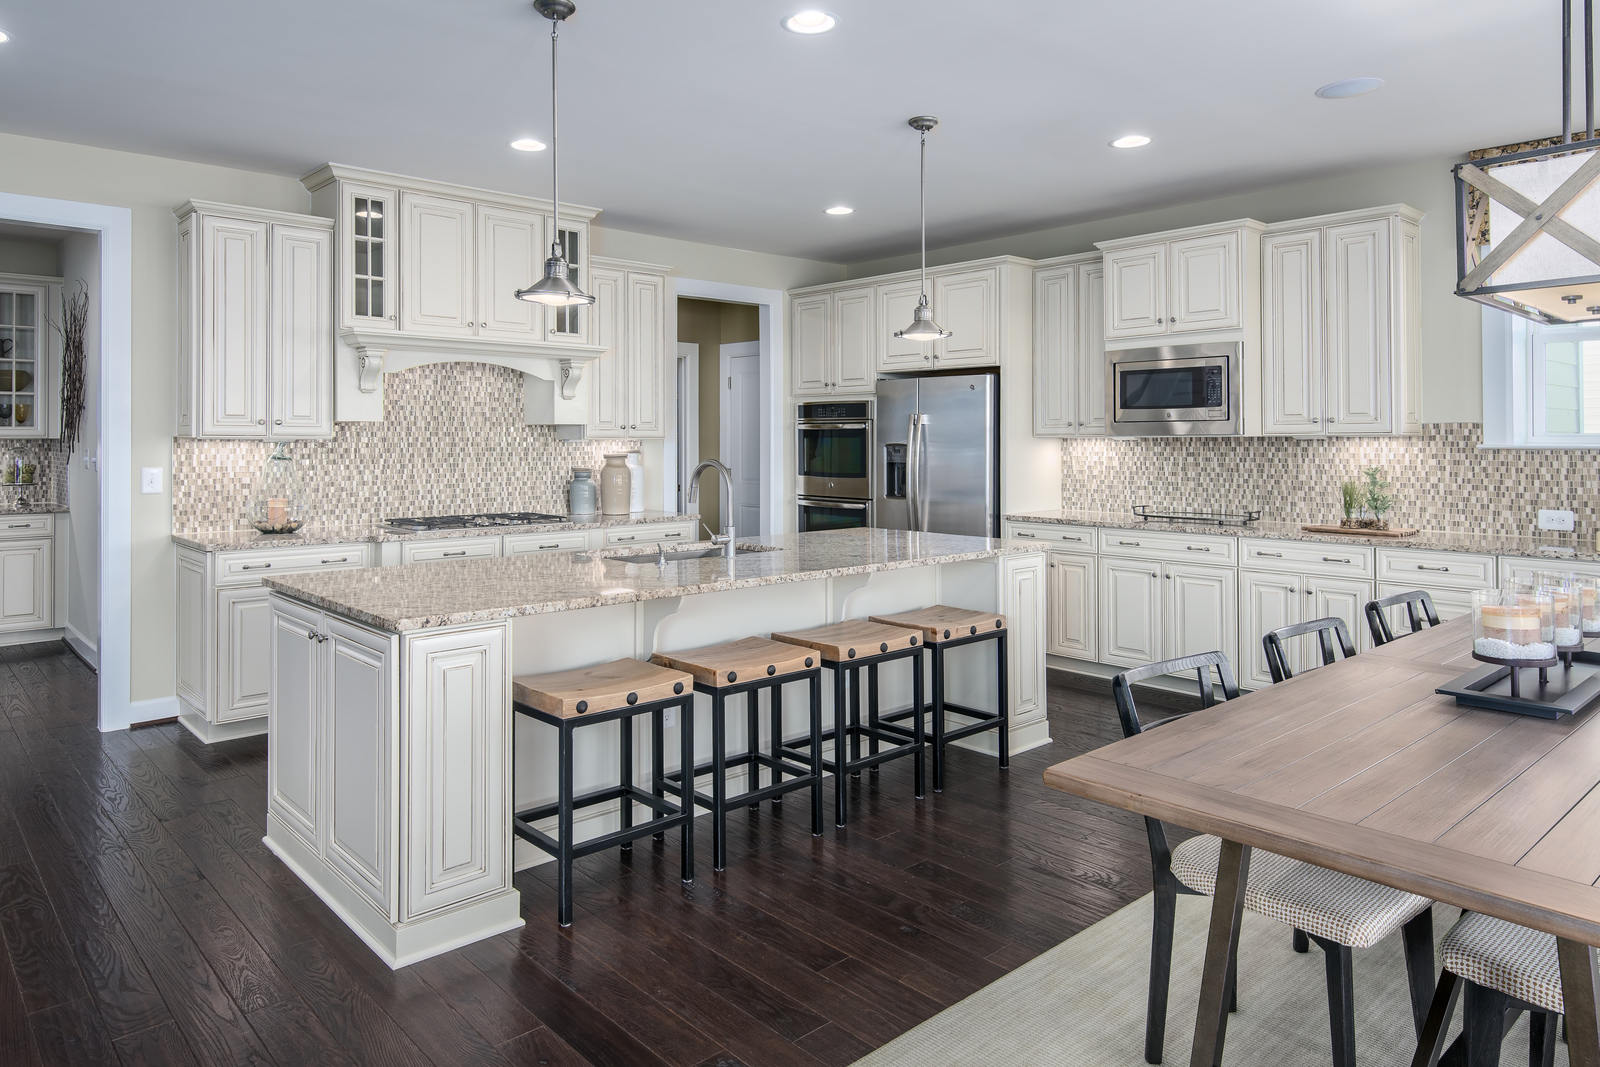 Your bright and airy kitchen at Laytonsville Preserve is a chef's dream. Gorgeous stainless steel appliances perfectly accent the Timberlake cabinetry and elegant tile backslash.